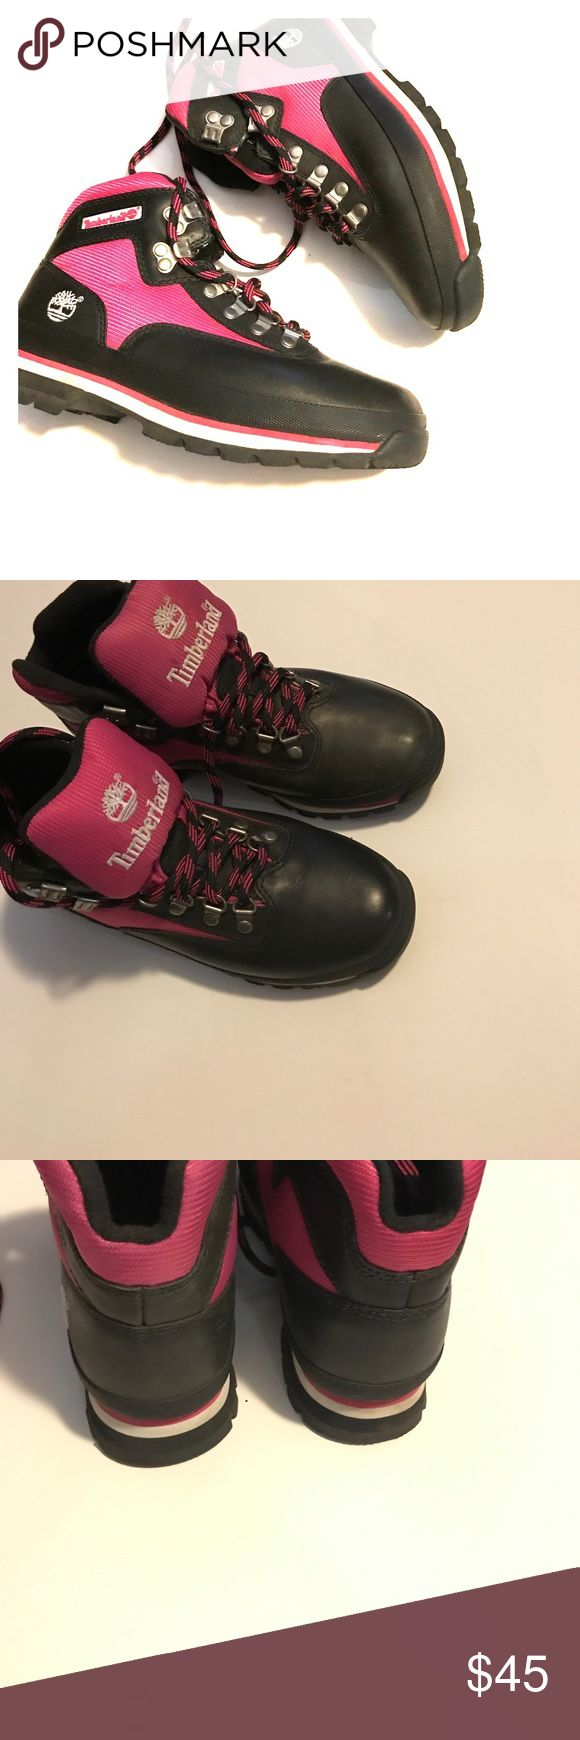 Pink and Black Timberland Pink and Black Timberland hiking boots. Worn once on vacation! OFFERS WELCOME!!!! Timberland Shoes Lace Up Boots